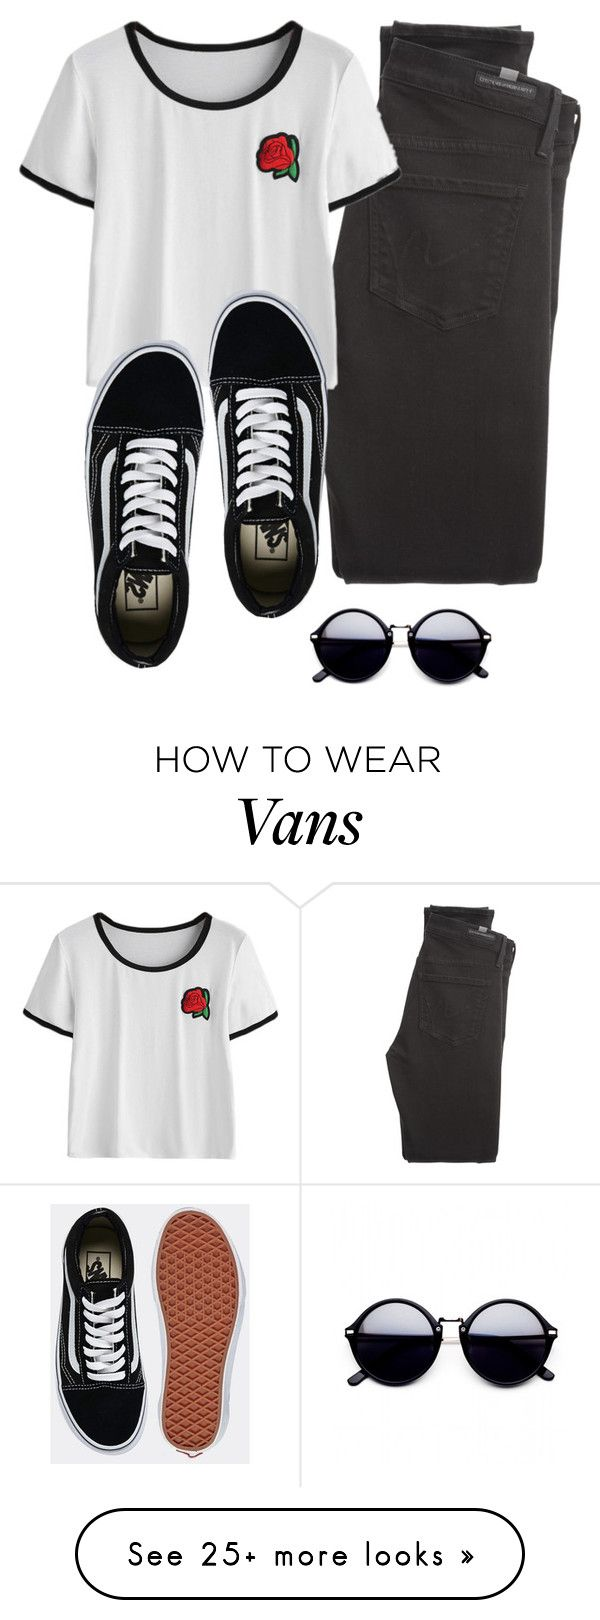 """Vans"" by denaexr on Polyvore featuring Citizens of Humanity and Vans"